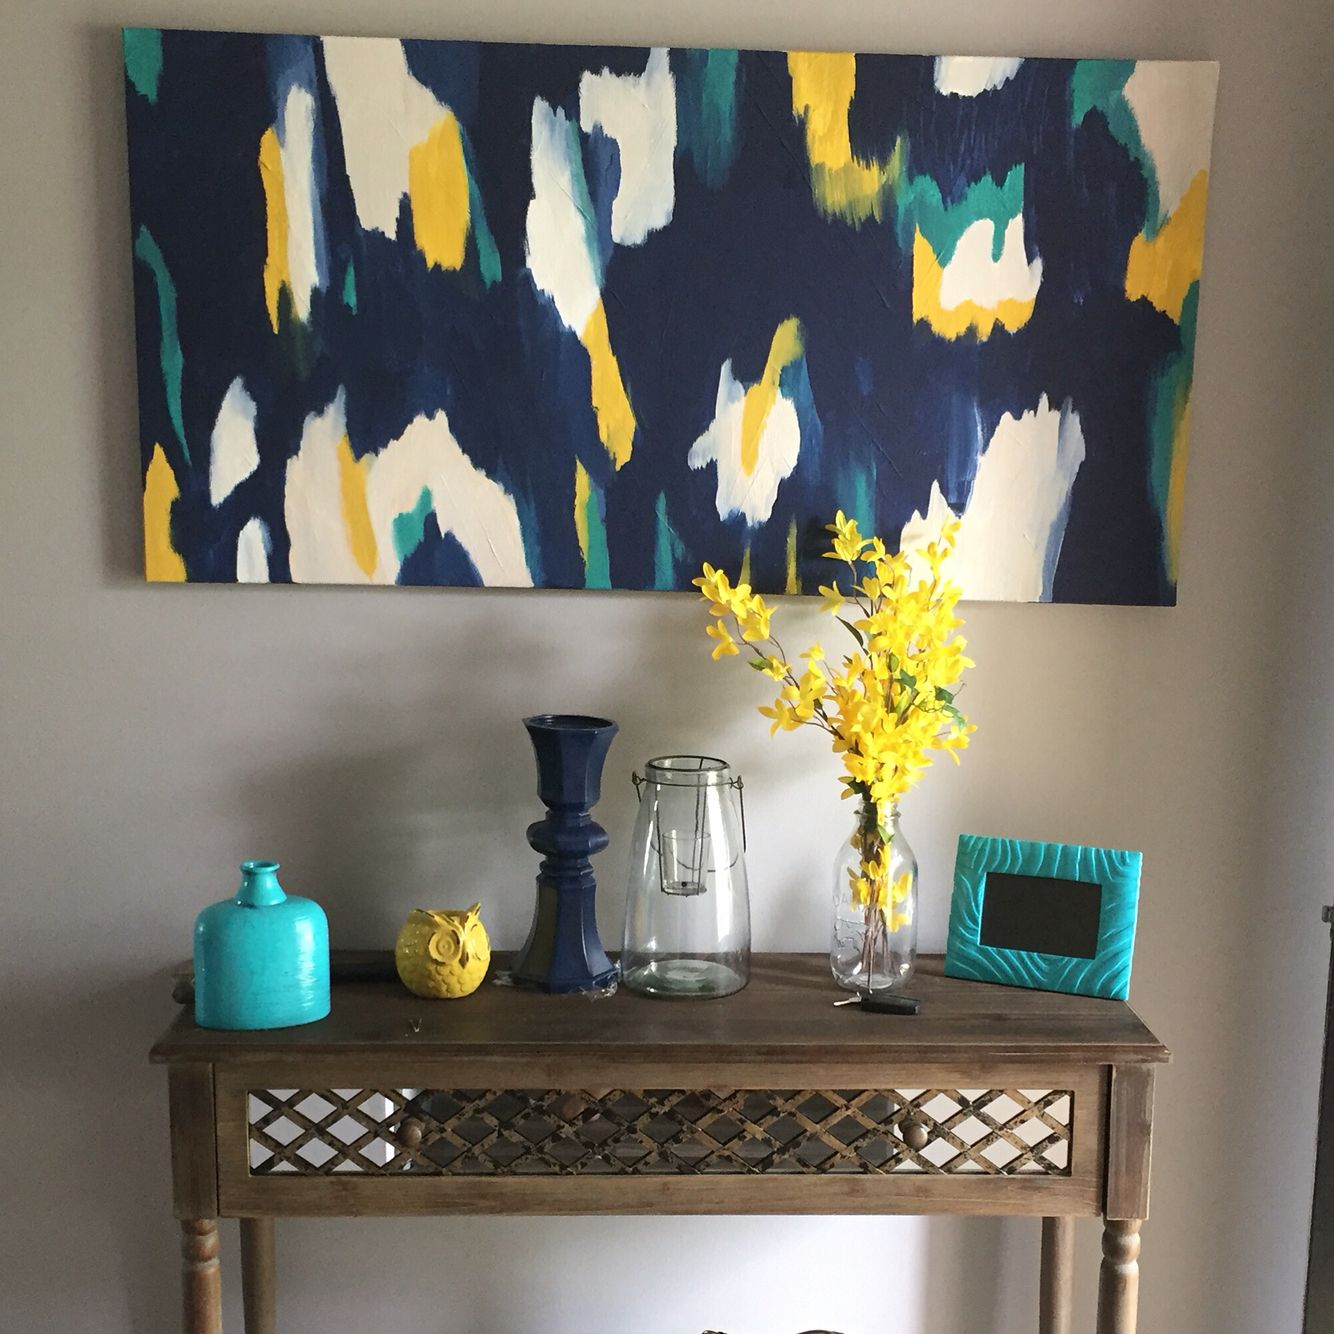 My Home Yellow Gray Turquoise And Navy With Images Living Room